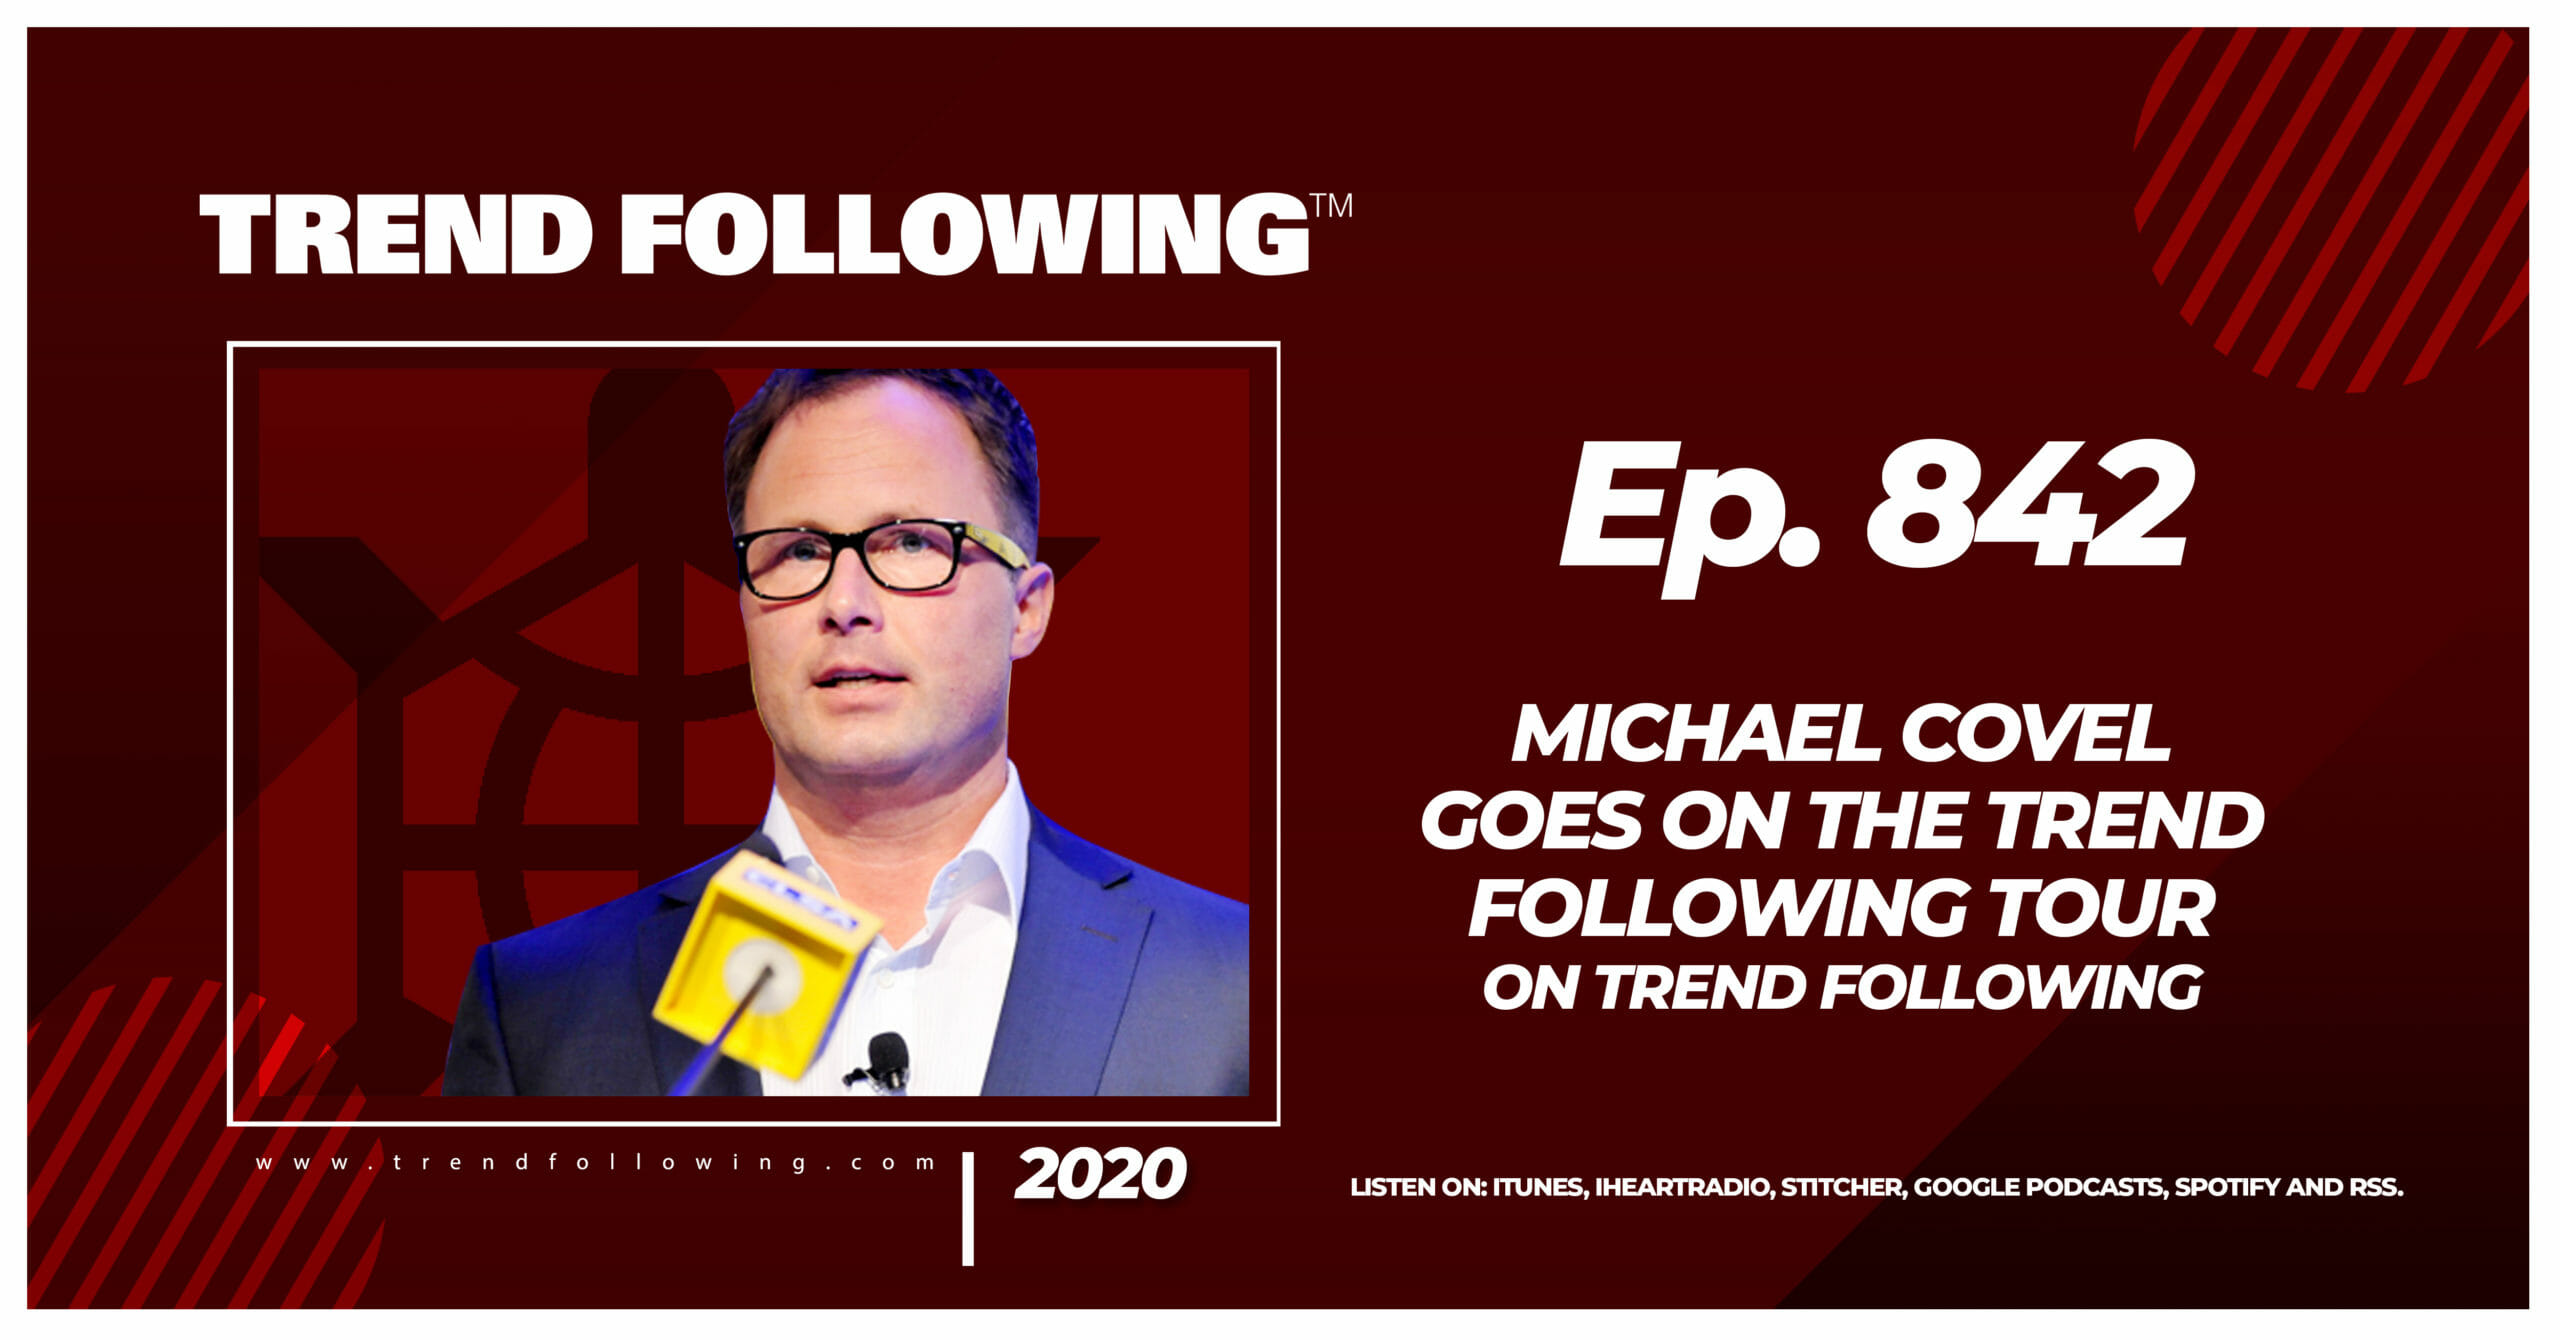 Episode 842 Michael Covel Goes on the Trend Following Tour